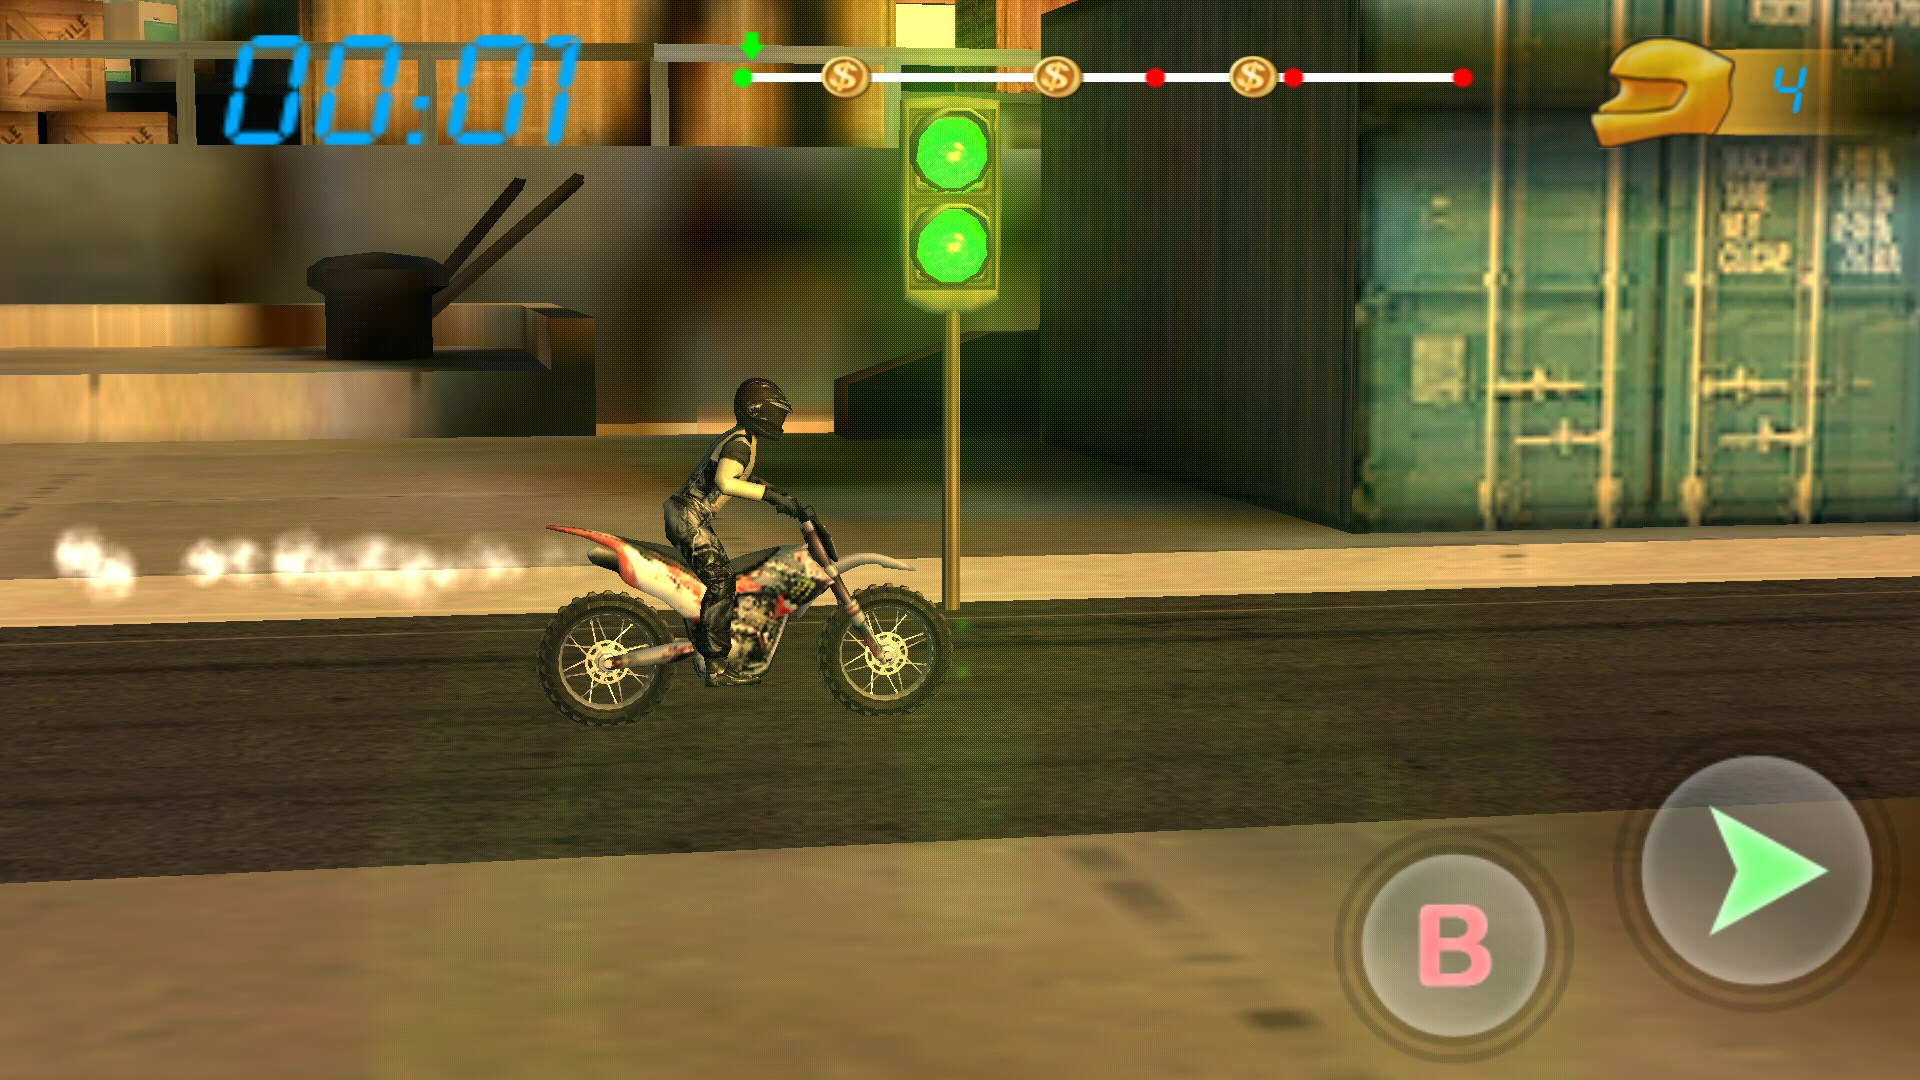 3D Bike Race Game - Play online at Y8.com